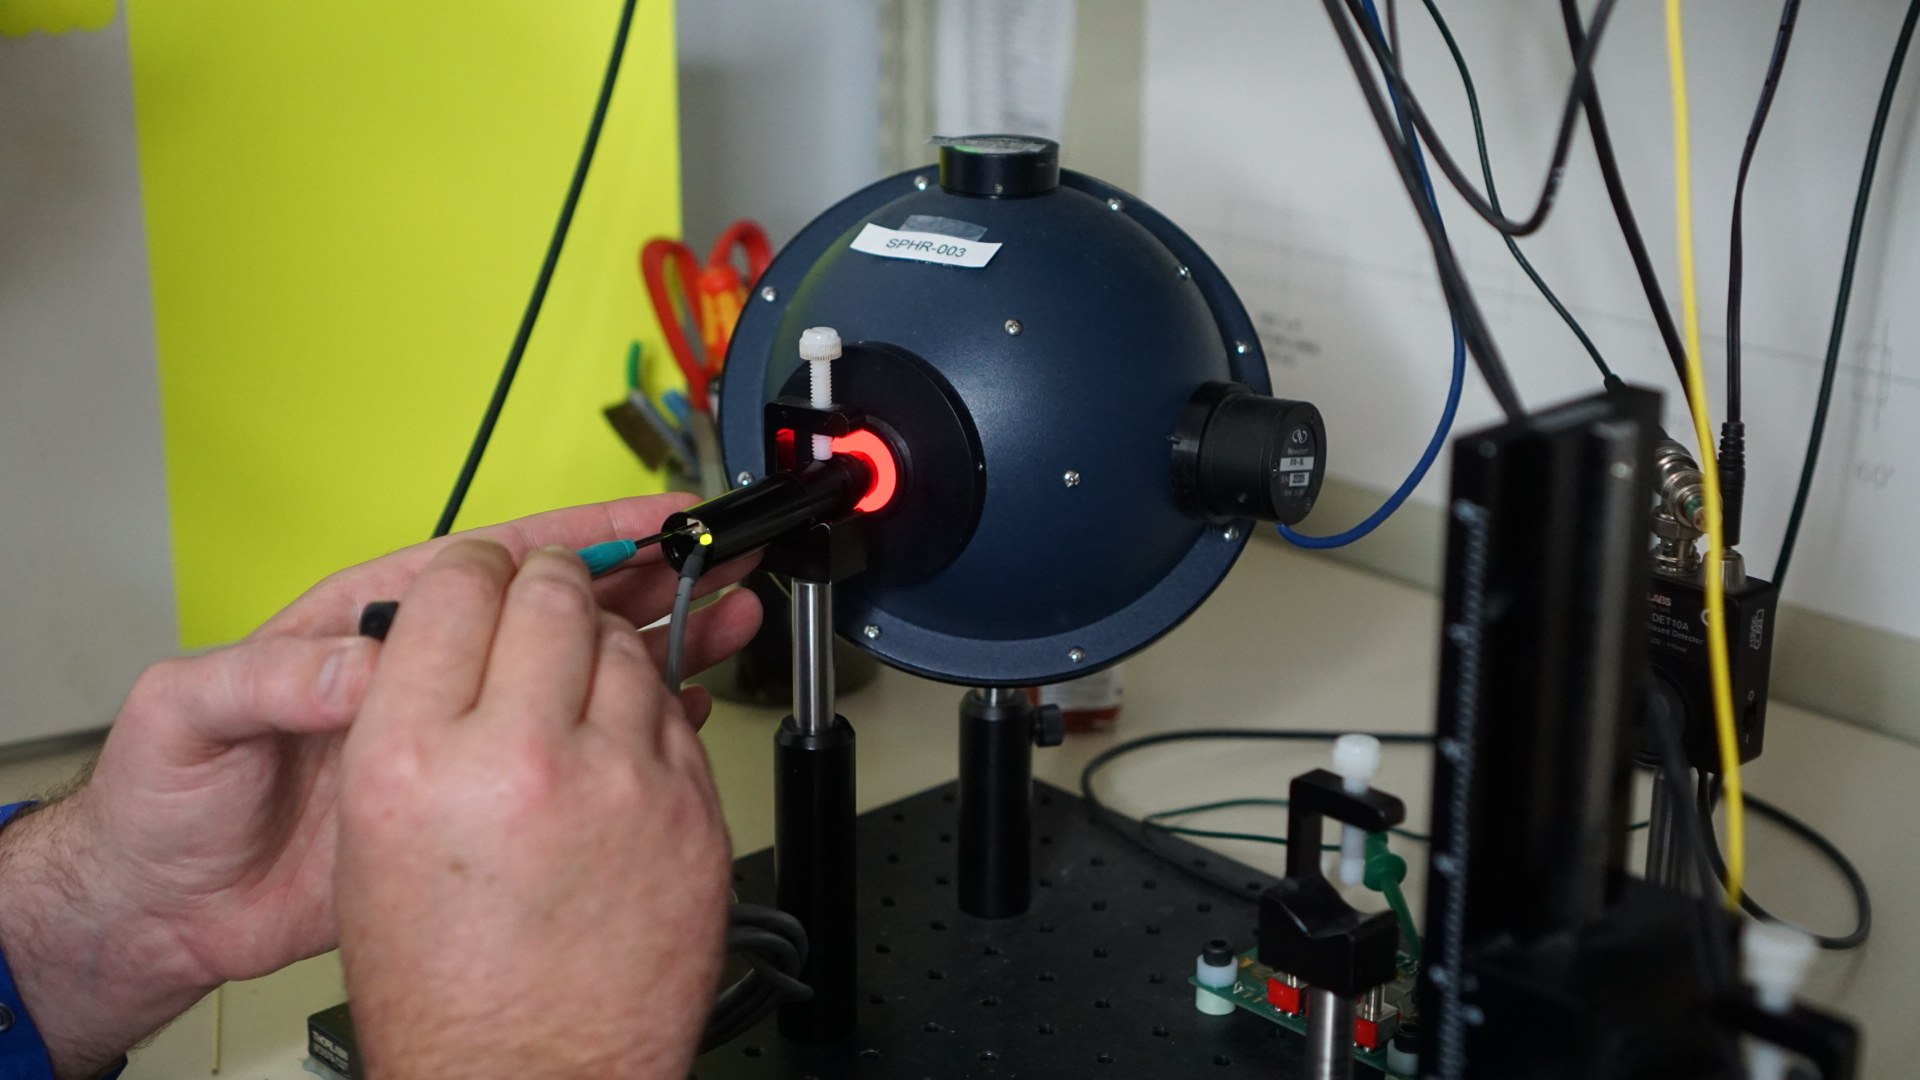 Integrated Power Sphere being used during Quality Control process for precise optical power verification